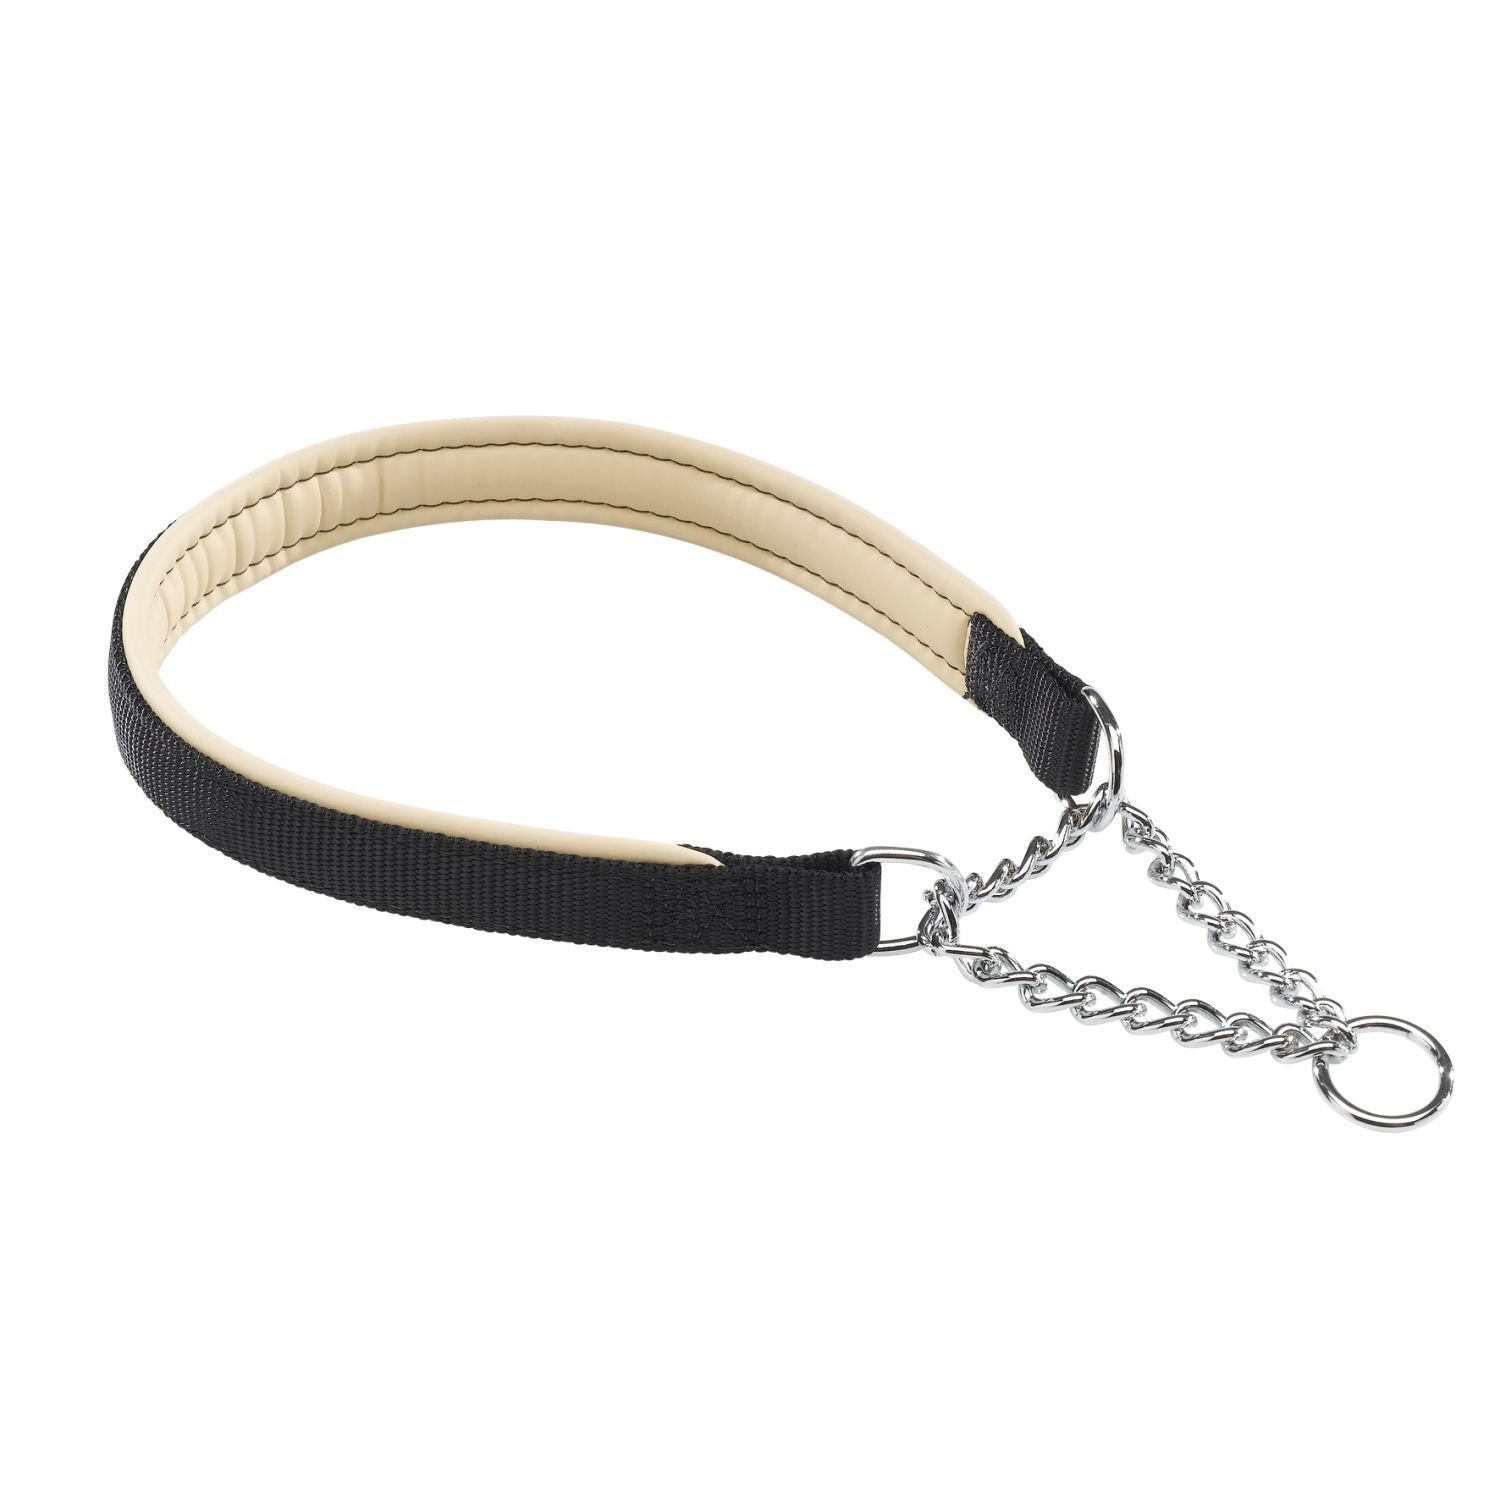 FERPLAST DAYTONA NYLON COLLAR WITH METAL CHAIN DOG DOGS ...